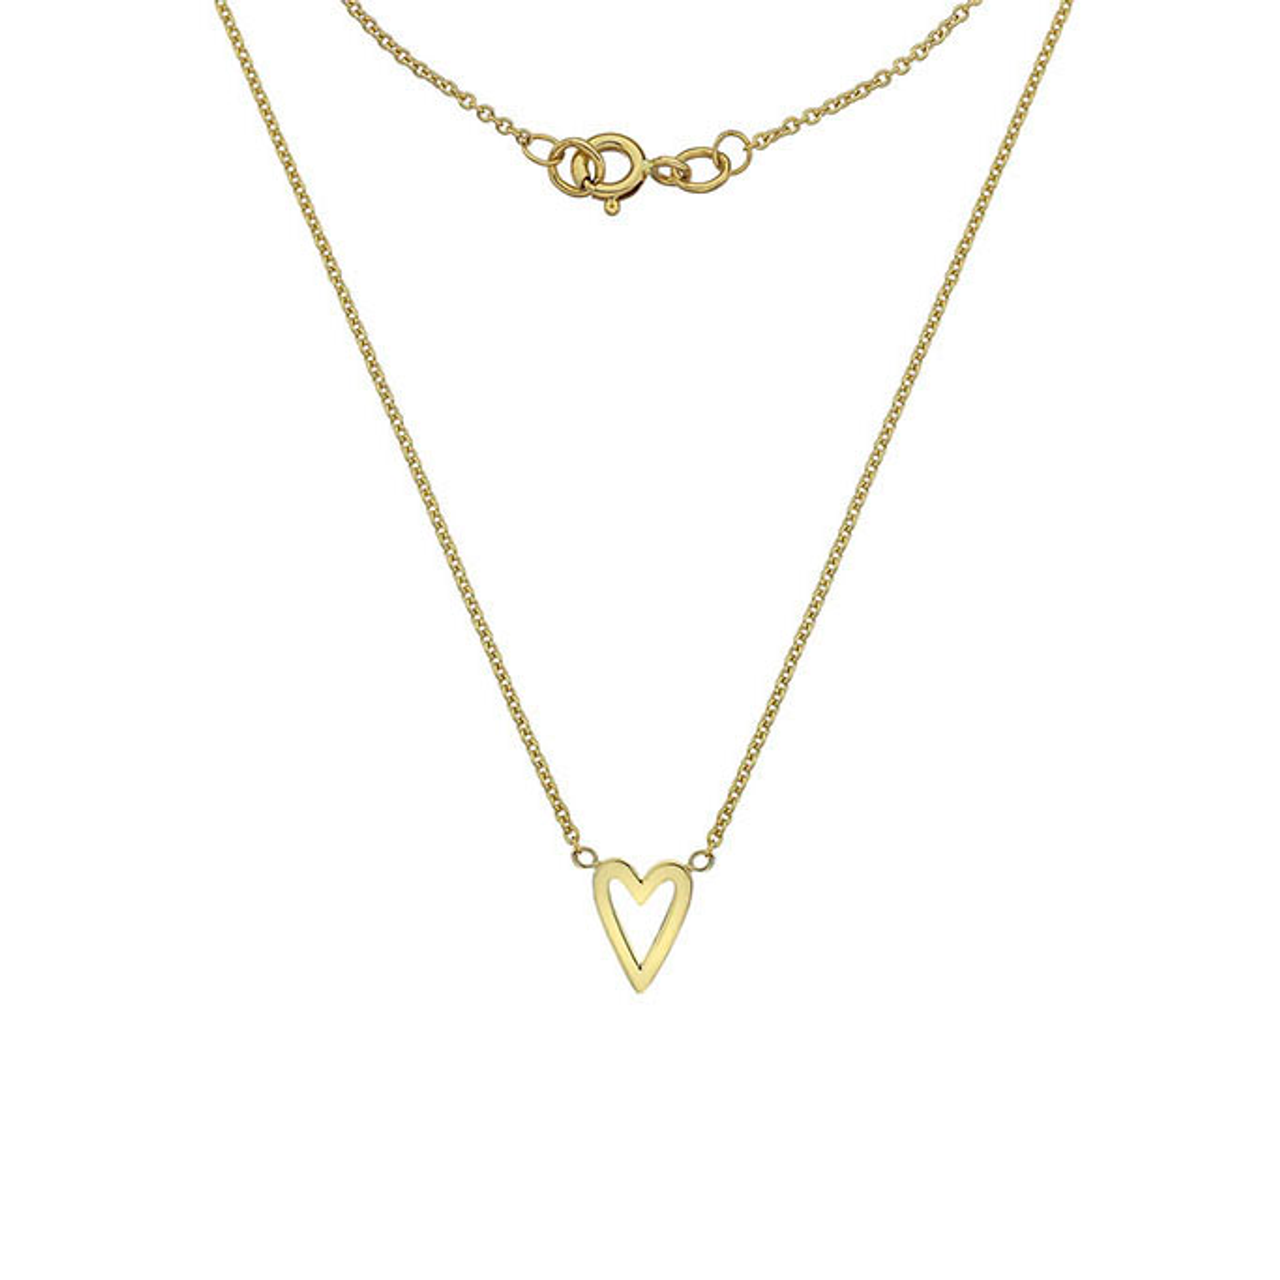 9ct Yellow Gold long Heart Pendant on Chain